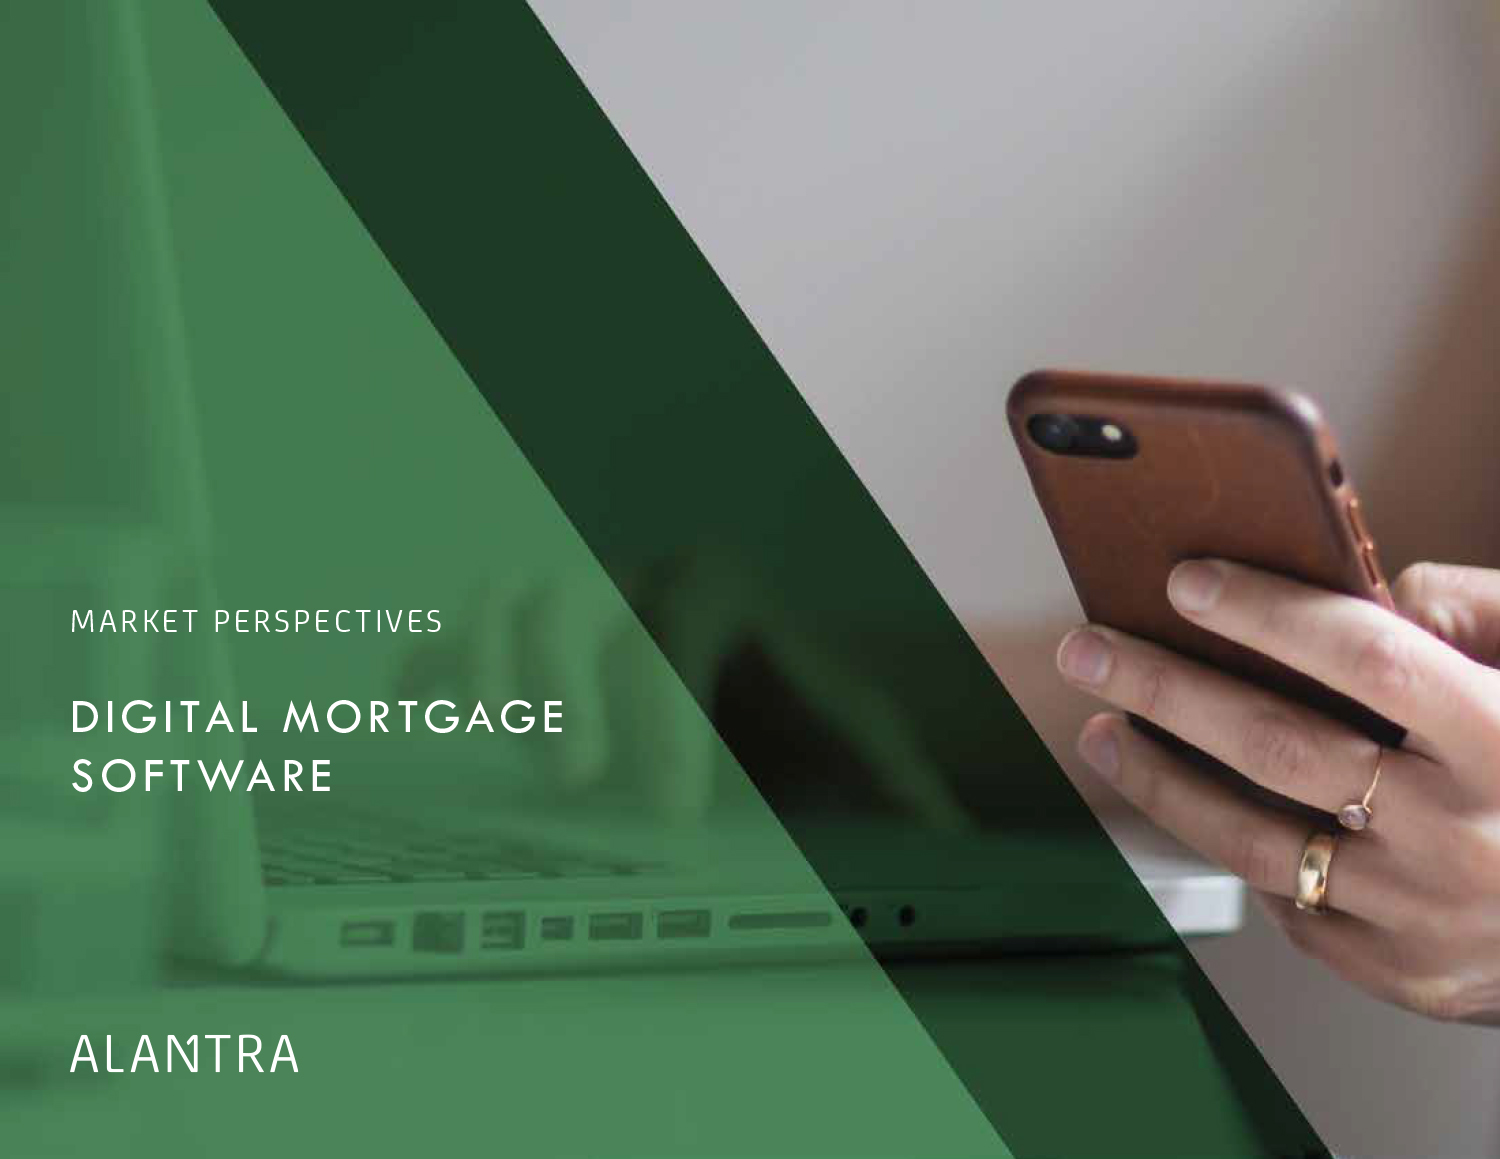 Digital Mortgage software - Consumer expectations driving innovation across the ecosystem for modern, mobile mortgage application experience- 'Rocket Mortgage' effect. Agents and loan officers adopting digital solutions to simplify complex workflow as the technology has proven value to increase volume. Attractive segment for private investors and early innings of consolidation.